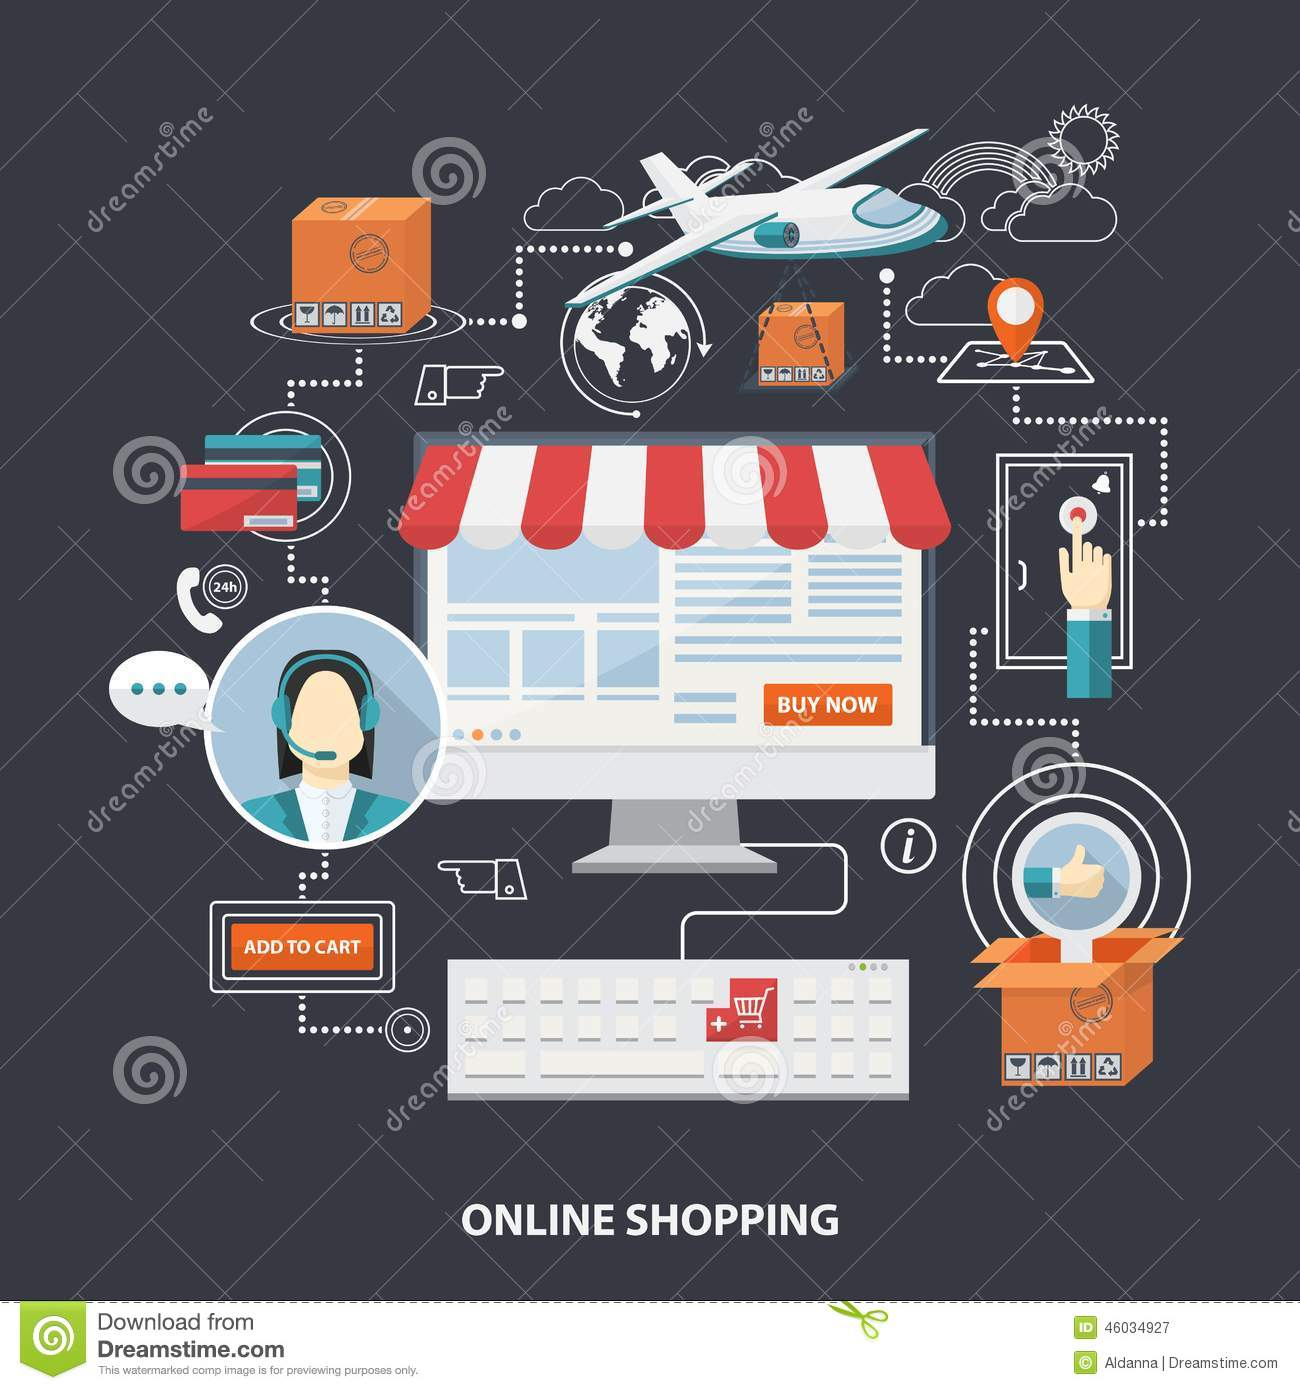 Poster Online Kaufen Vector Flat Design Shopping Concept Stock Vector - Illustration Of Design, Internet: 46034927